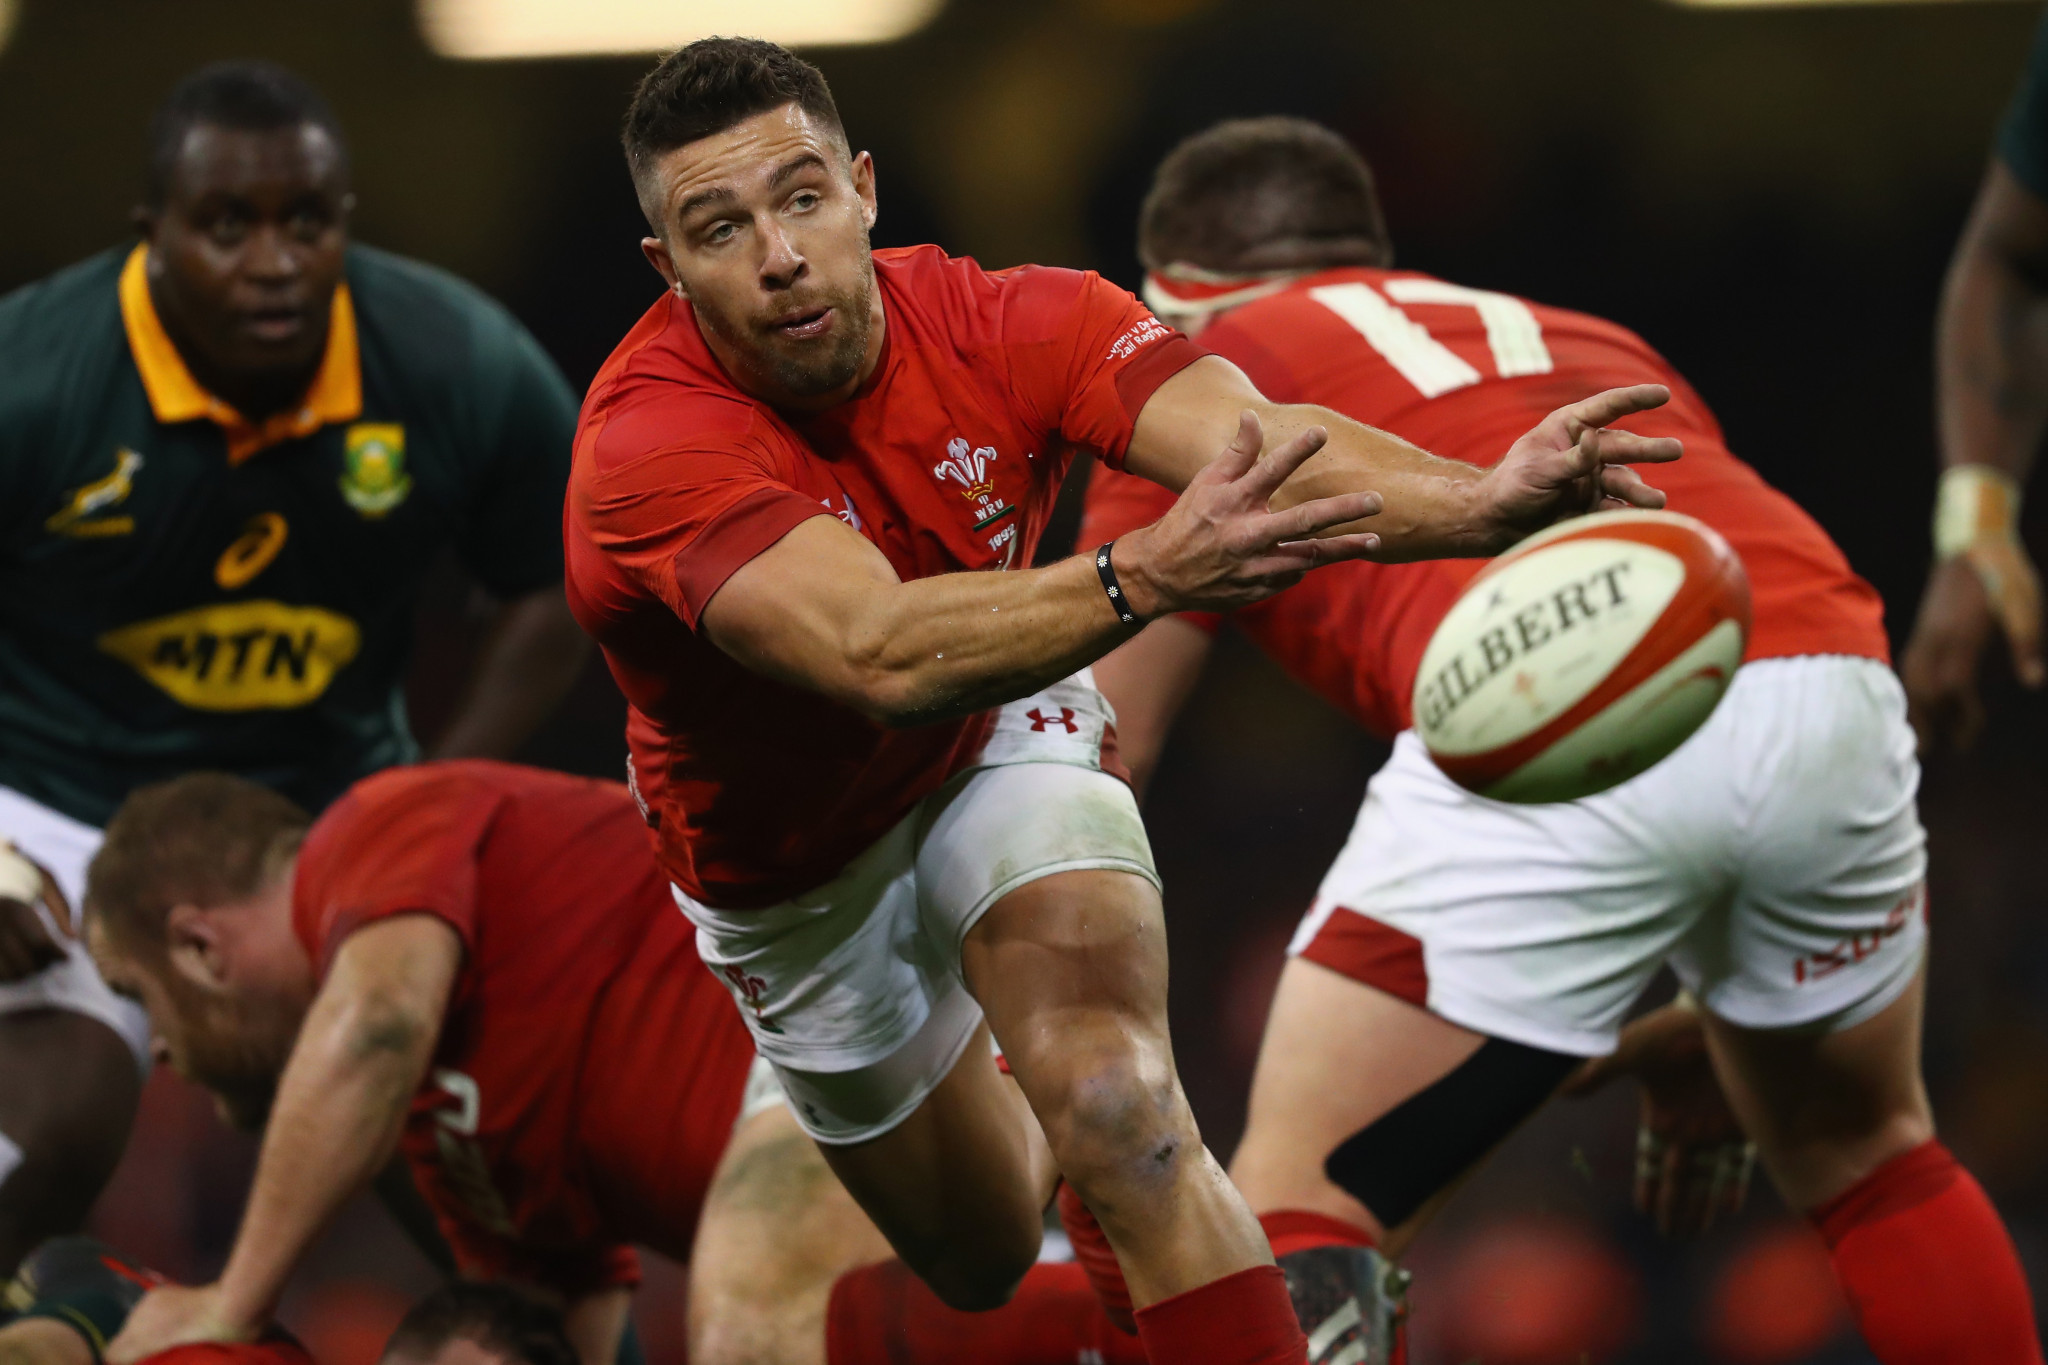 A compromise was negotiated to allow rugby player Rhys Webb to continue representing Wales after transferring to French club Toulon. This seems preferable to a legal dispute ©Getty Images